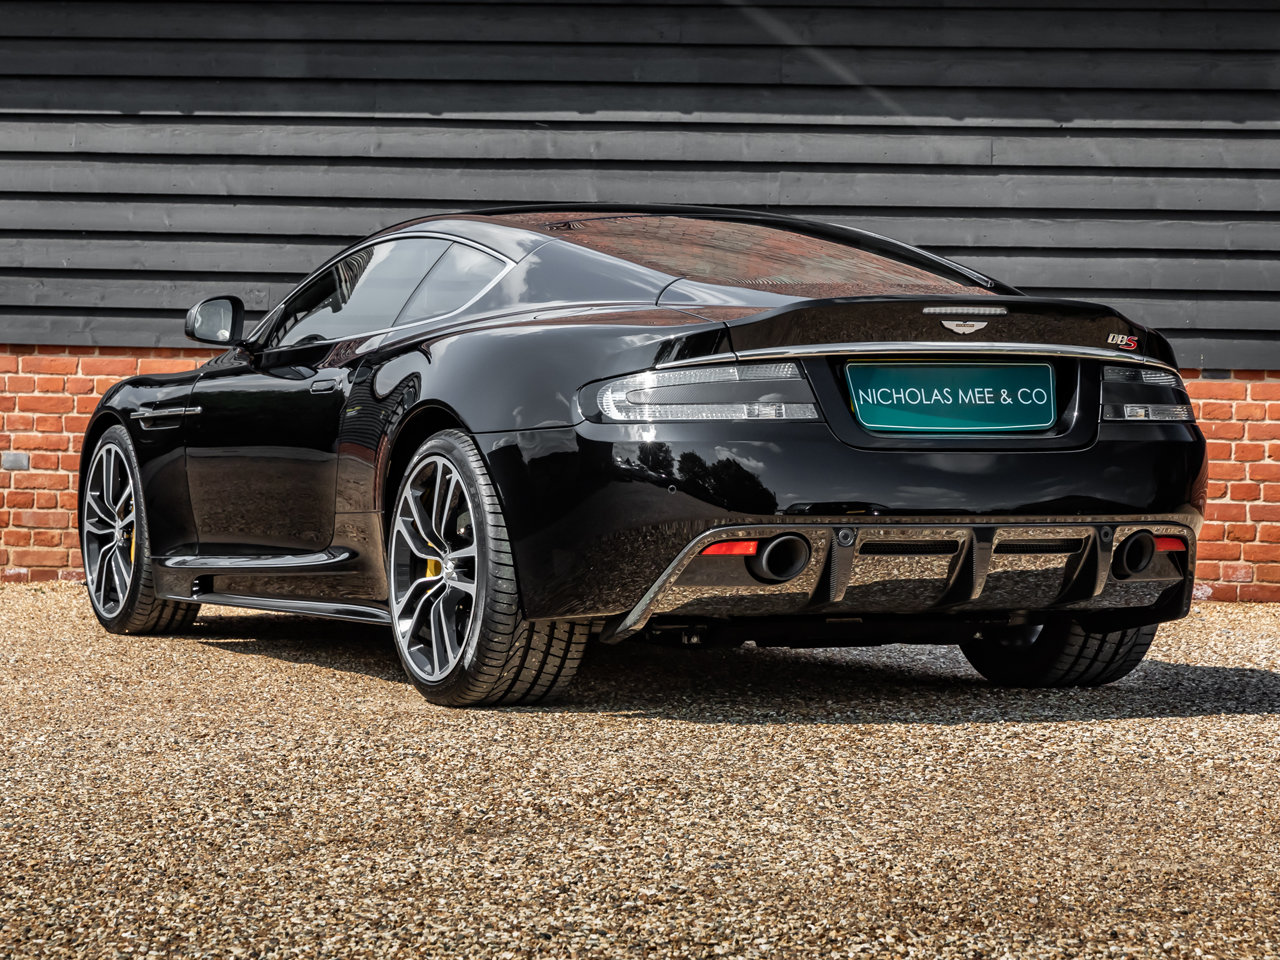 2012 Aston Martin DBS Ultimate SOLD (picture 2 of 6)